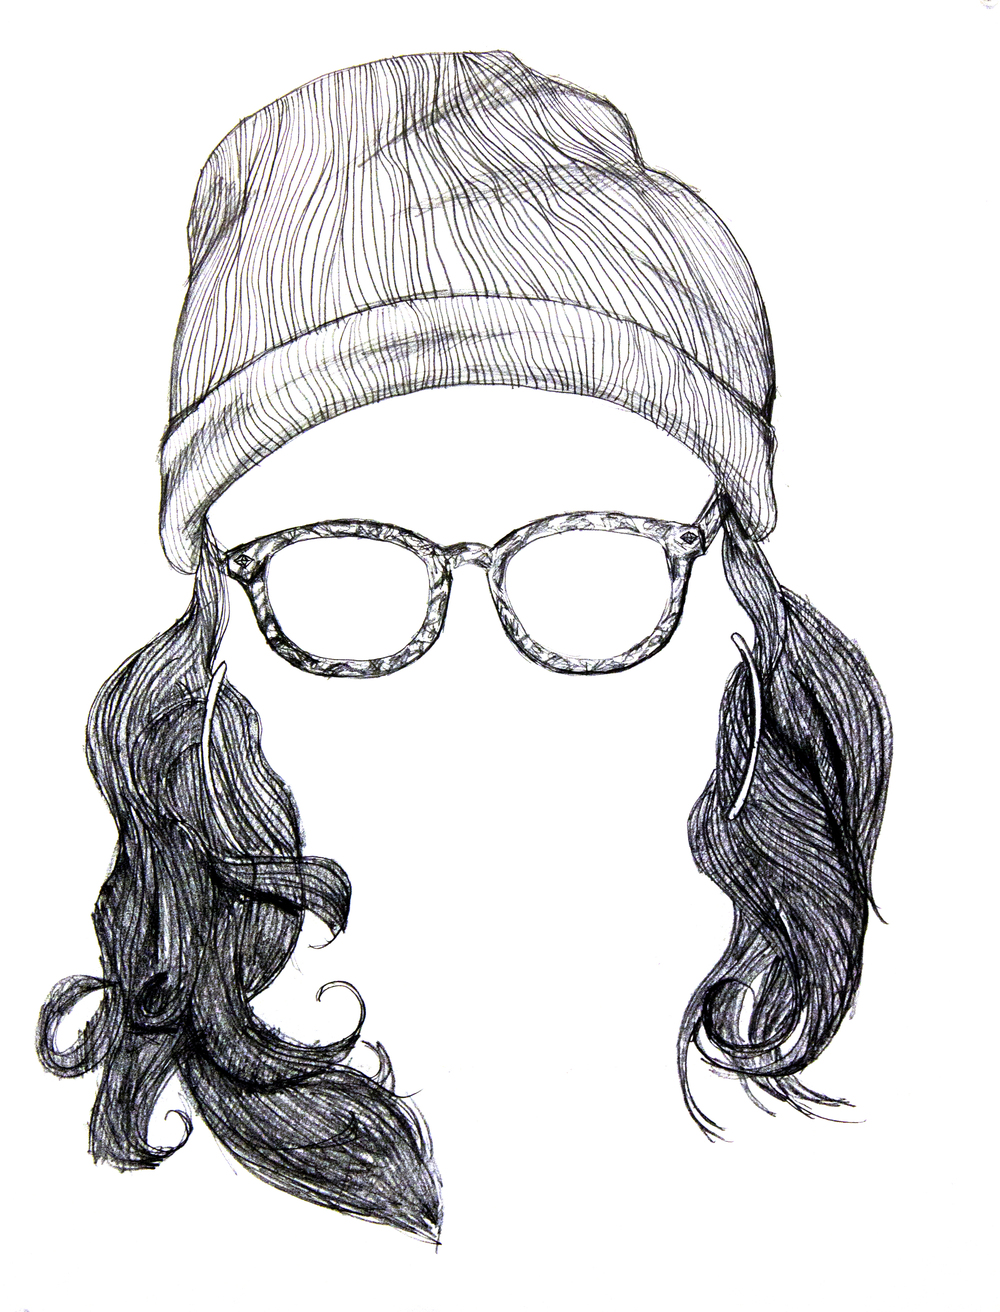 Instant Hipster  2012, ink on paper, 18in x 24in